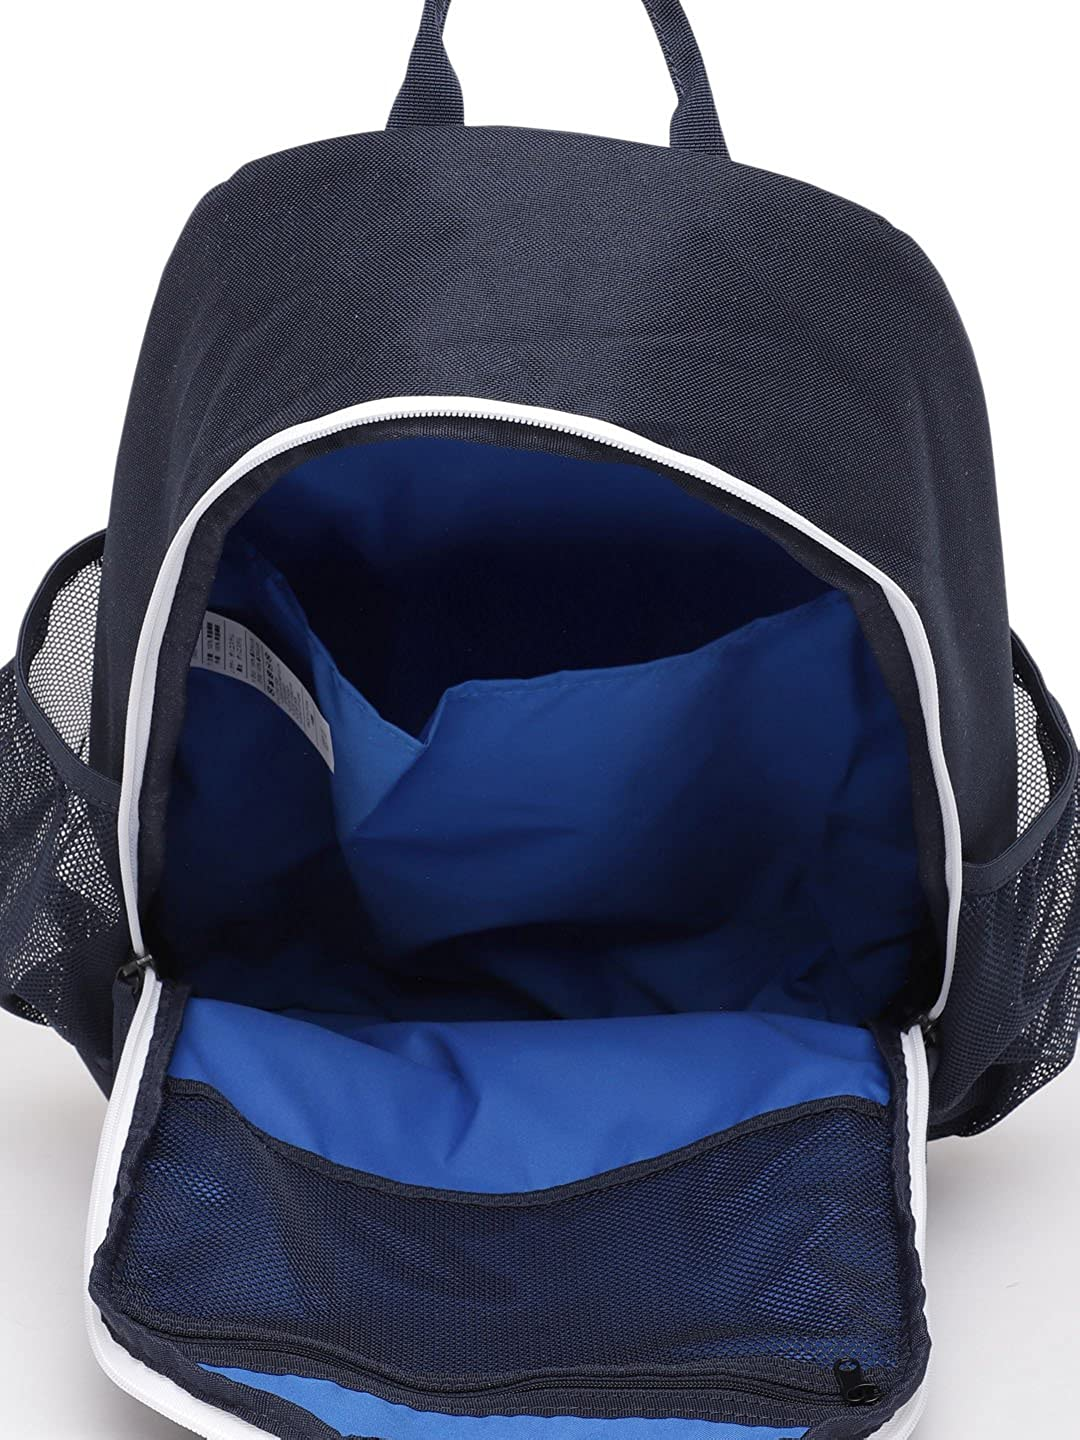 13570c1d79 Nike Unisex Stadium FFF Navy Blue Backpack  Amazon.in  Shoes   Handbags